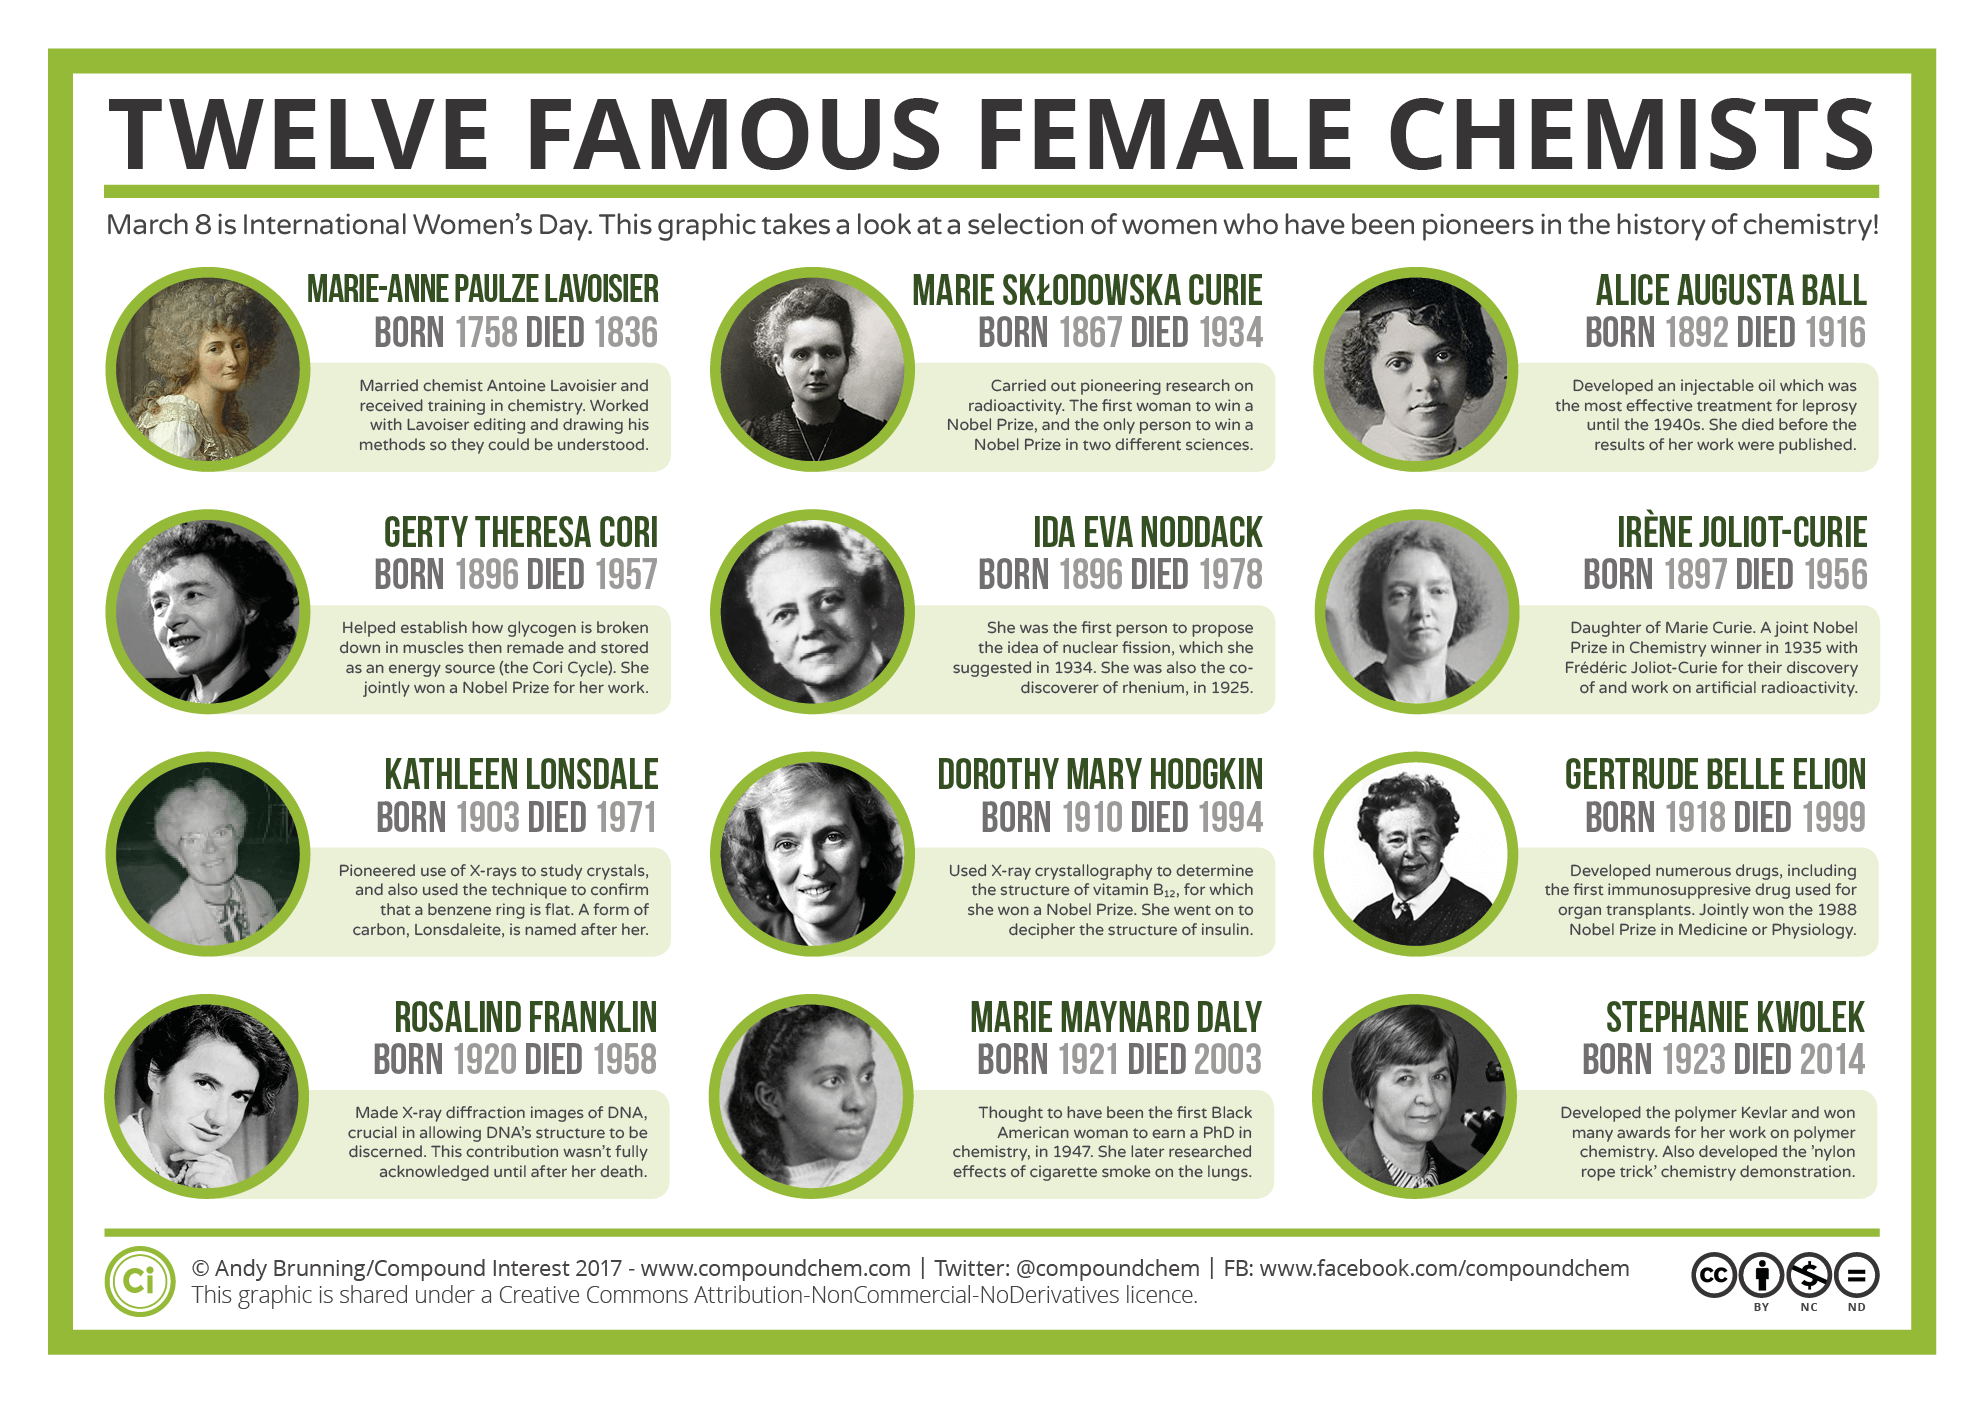 Compound interest the periodic table of elements element name international womens day twelve famous female chemists gamestrikefo Choice Image